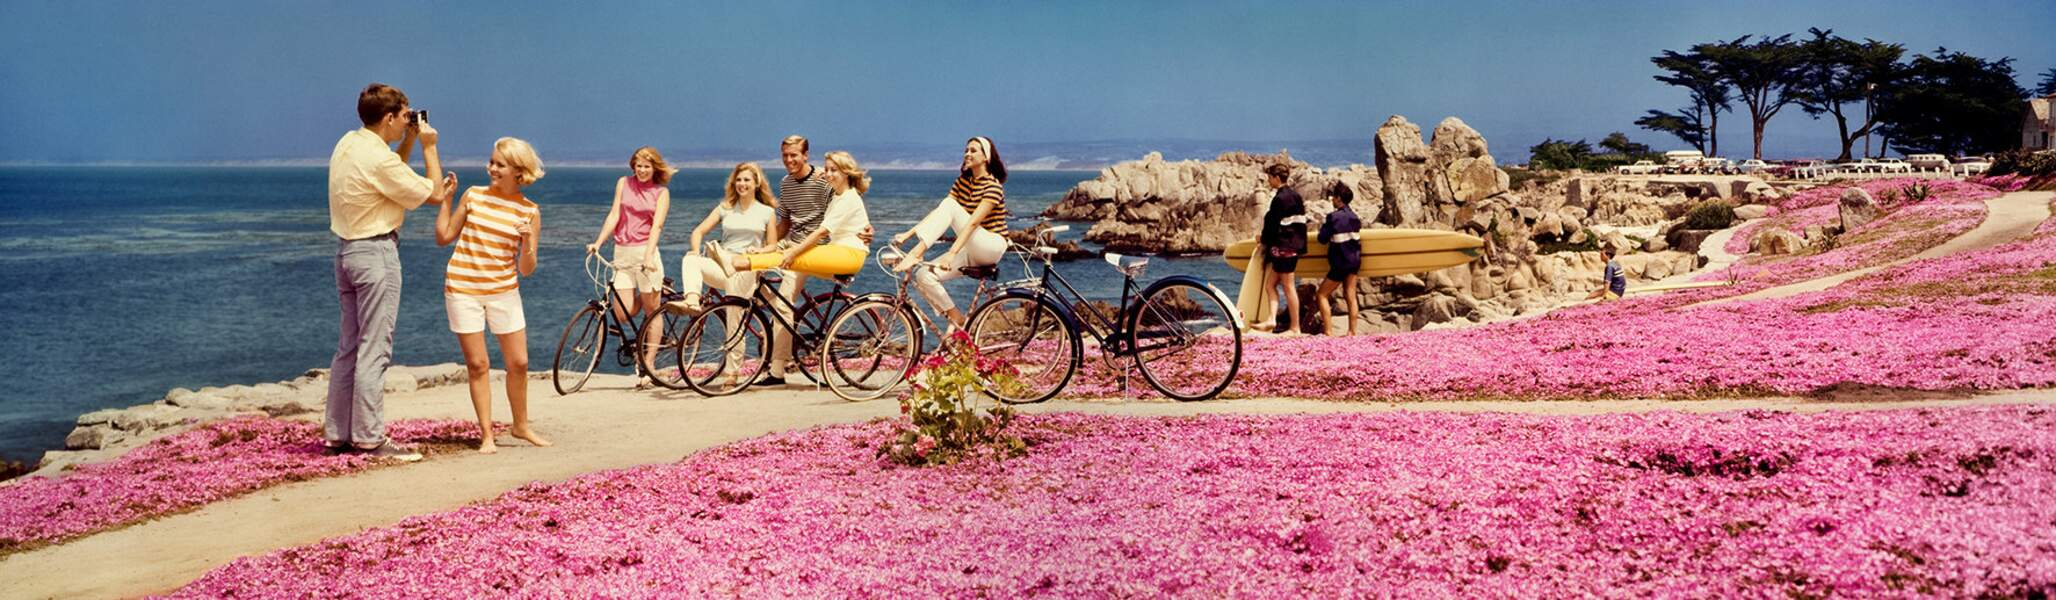 Teenagers With Bicycles, 1968